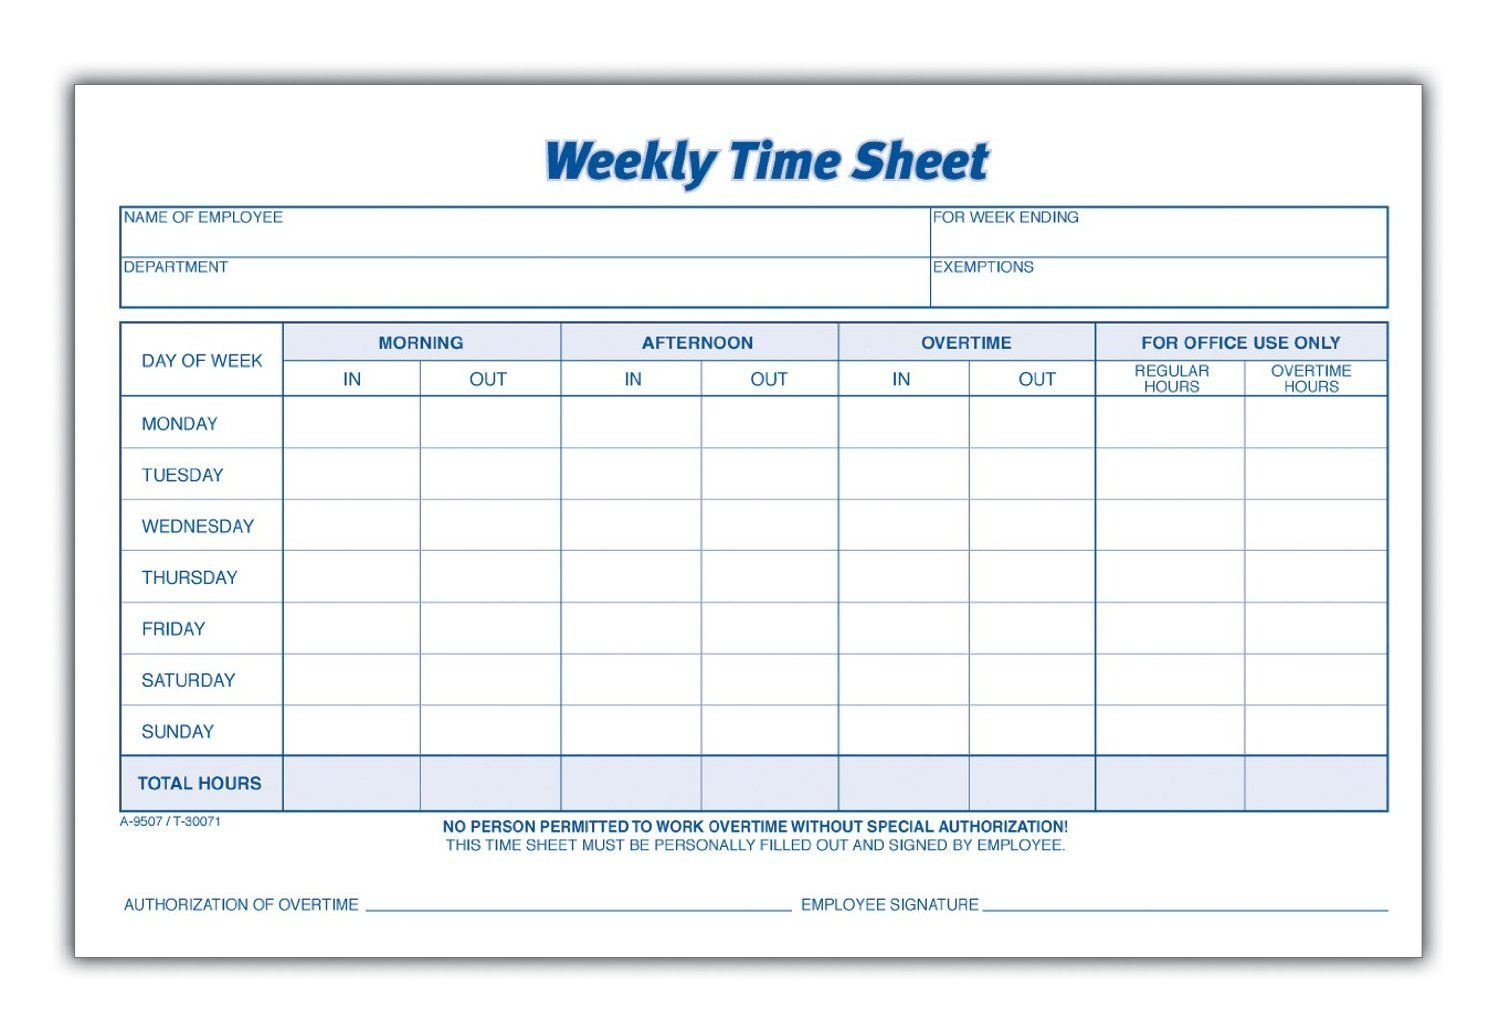 Weekly Employee Time Sheet | Good To Know | Timesheet Template - Free Printable Weekly Time Sheets